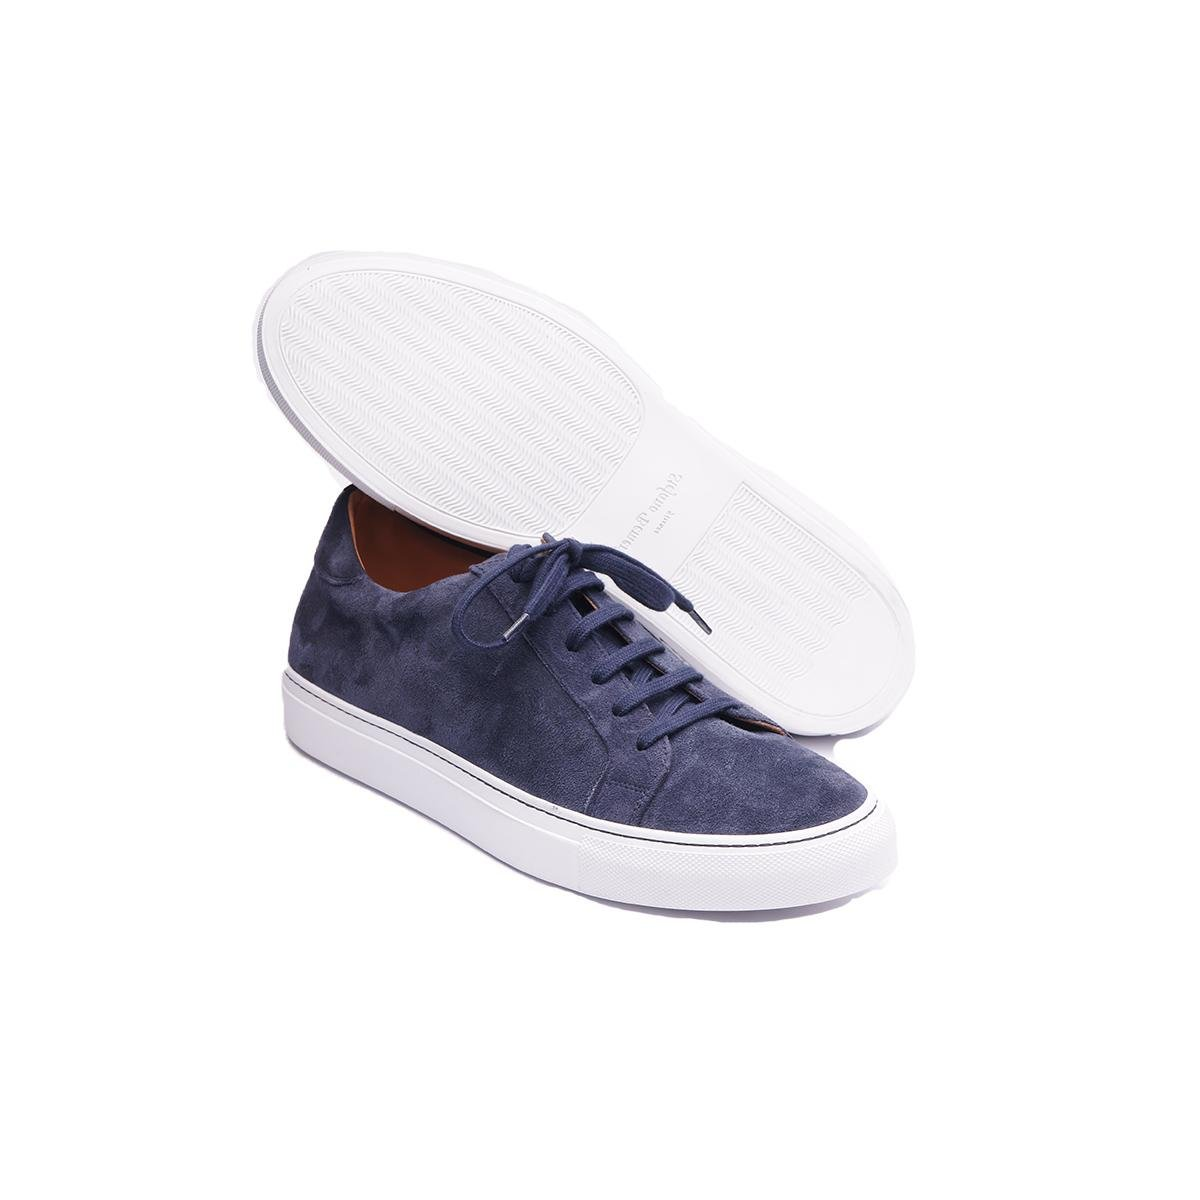 Outlet With Credit Card Baltic Blue Kudu Suede Sneakers Stefano Bemer Orange 100% Original YMp0zZ2